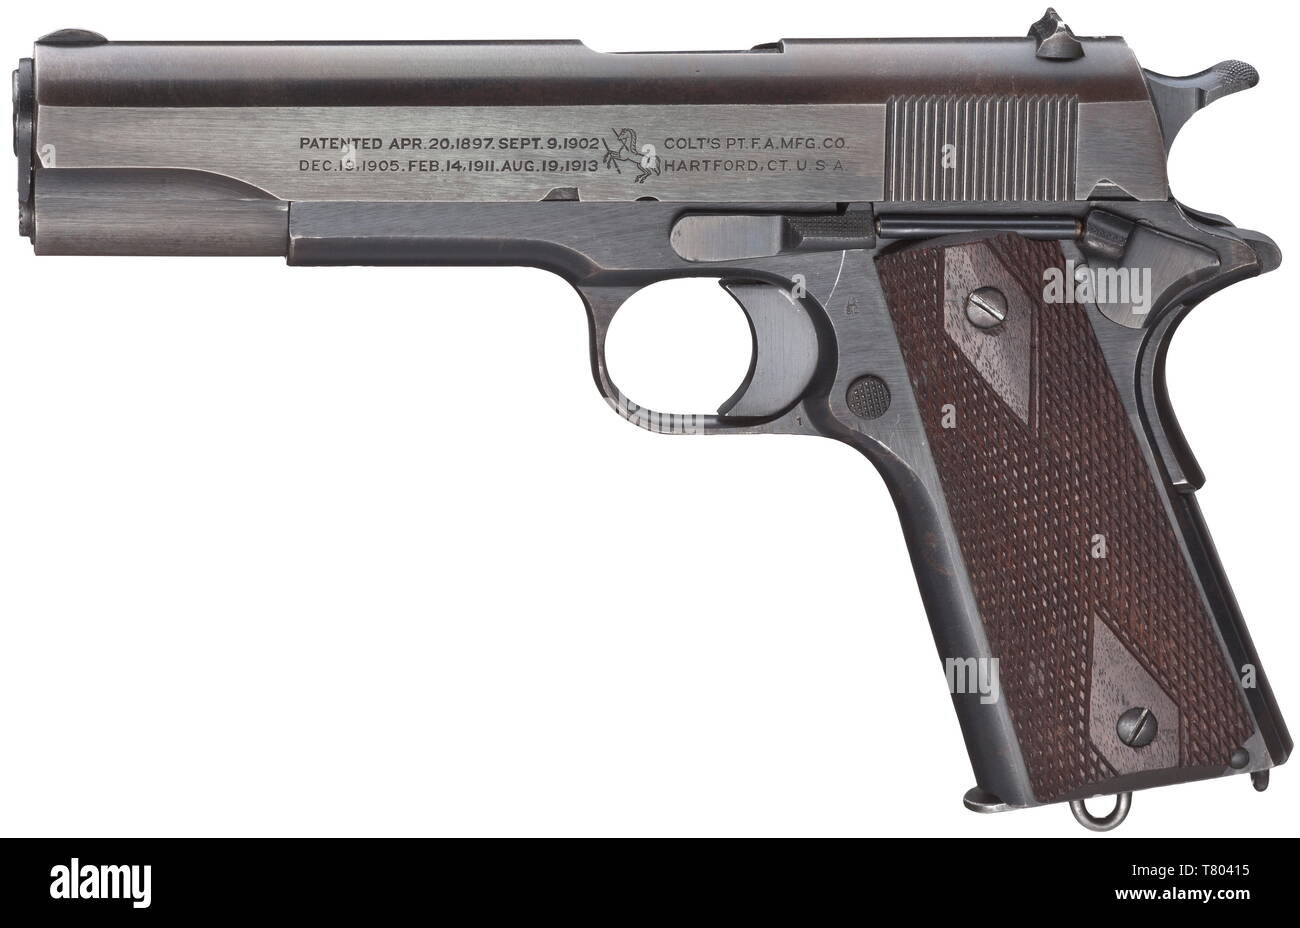 A Colt mod. 1911, cal..45 ACP, no. 617519. Bright bore. Manufactured in 1919. On left side of slide two-line corporate name and patent data, on the right 'MODEL OF 1911.U.S.ARMY', on frame marked 'United States Property'. Inspector's mark 'Eagle's Head S16', barrel marked 'HP'. Complete, original, somewhat thin blue-black finish, minimally spotted on grip. Flawless dark walnut grip panels. Correct magazine hardened in upper third. Rare collectors' item without any different stamps in original and almost mint condition. Erwerbsscheinpflichtig. his, Additional-Rights-Clearance-Info-Not-Available - Stock Image